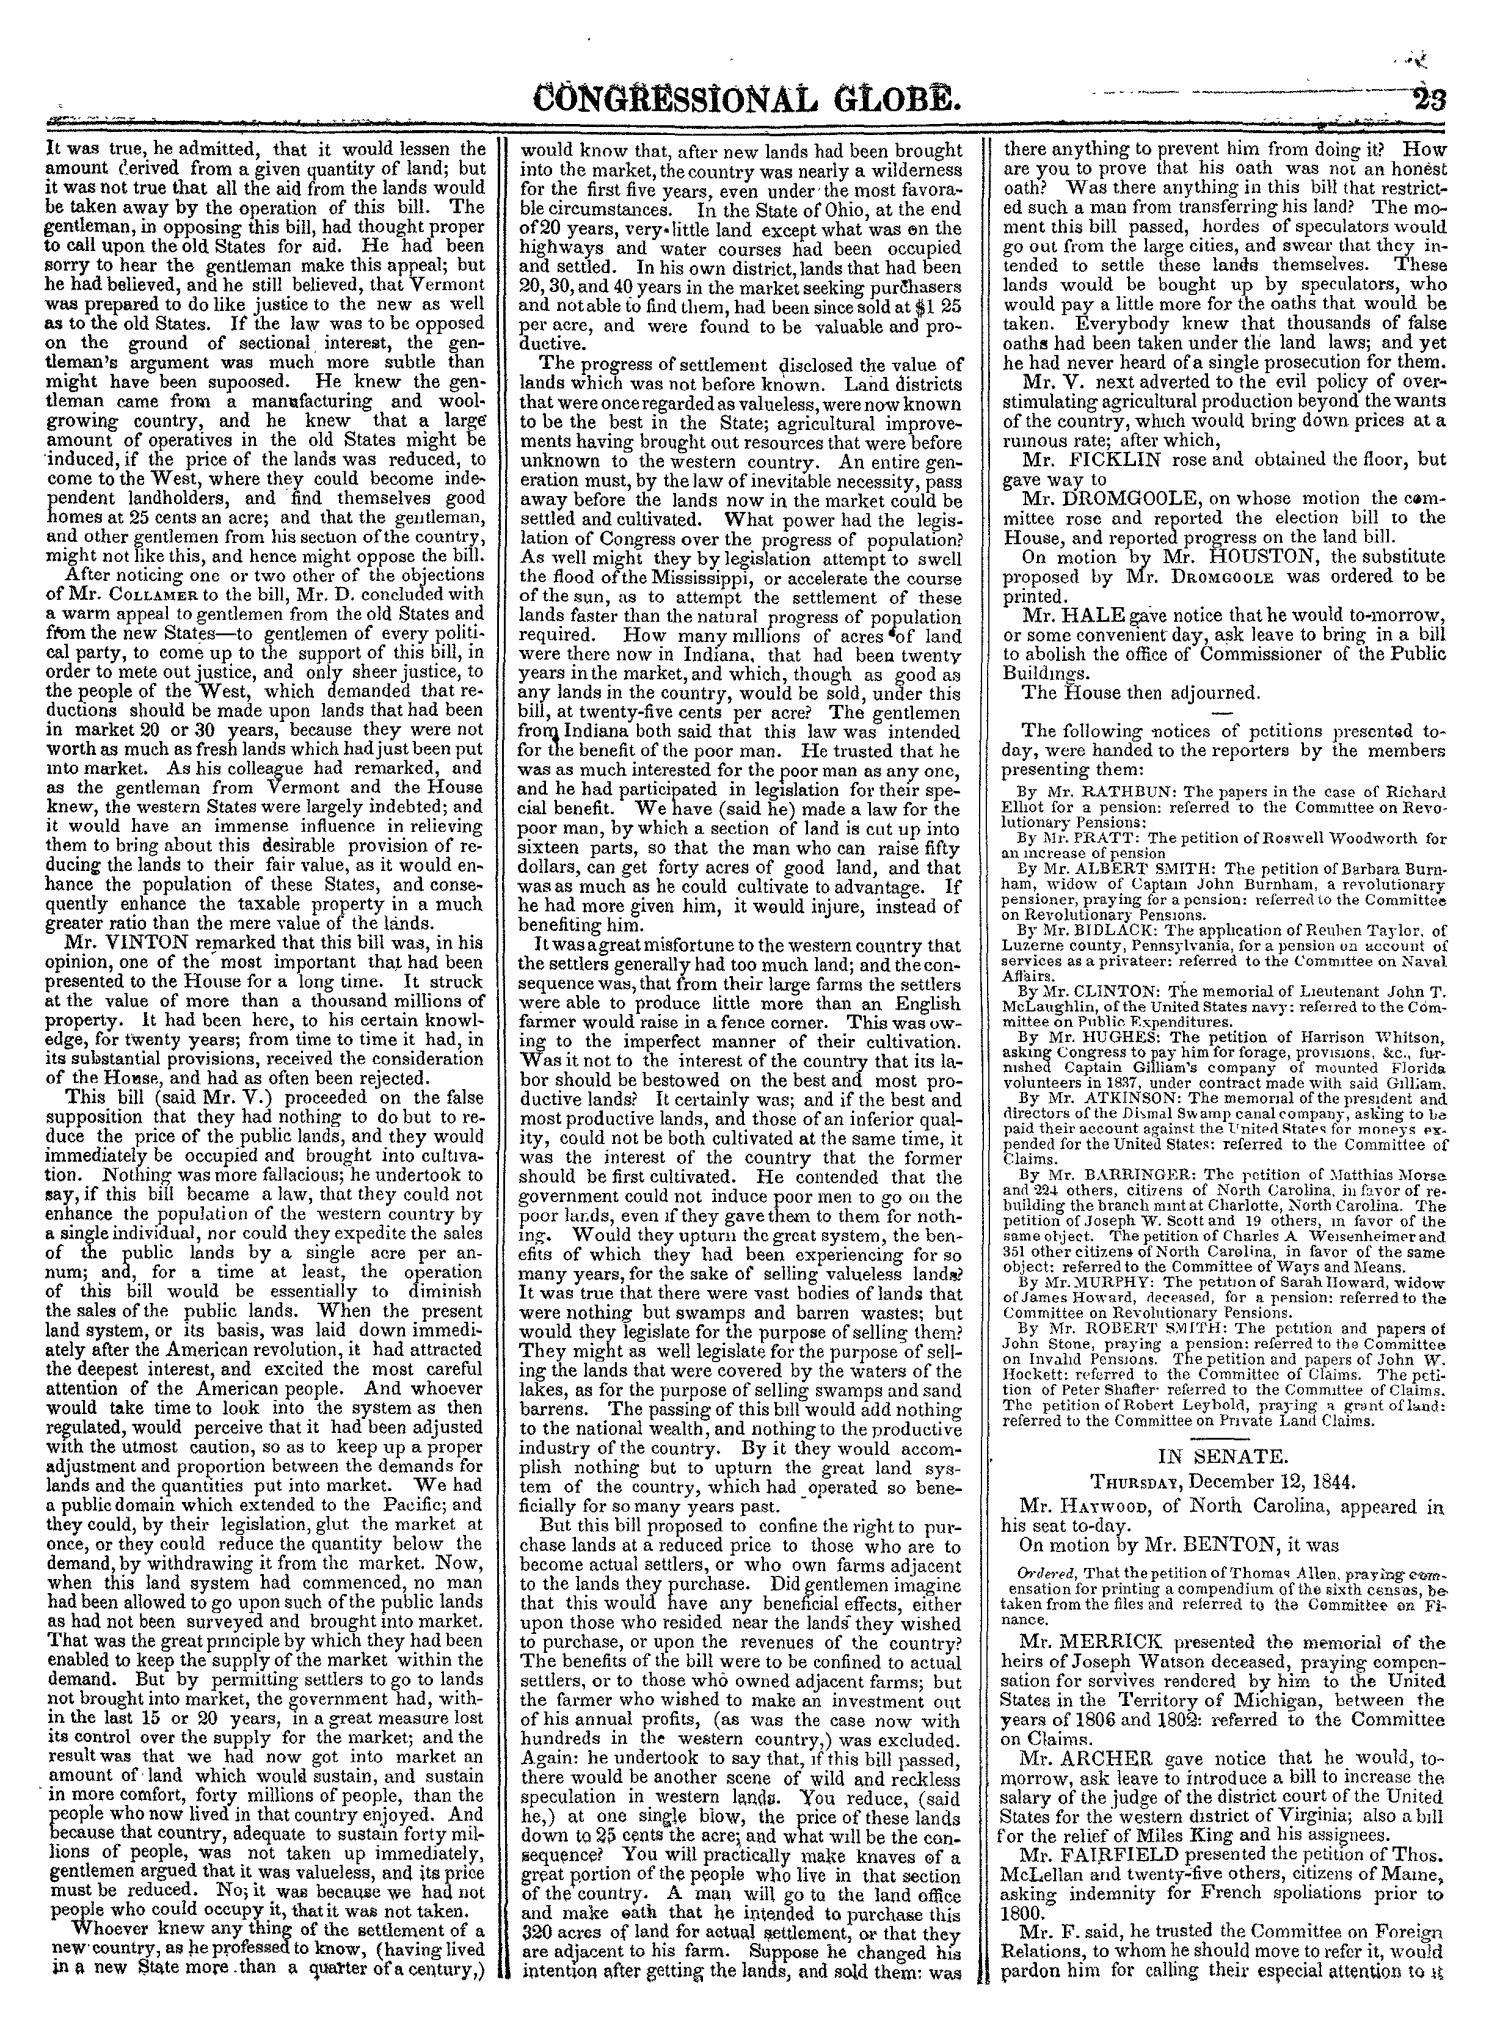 The Congressional Globe, Volume 14: Twenty-Eighth Congress, Second Session                                                                                                      23